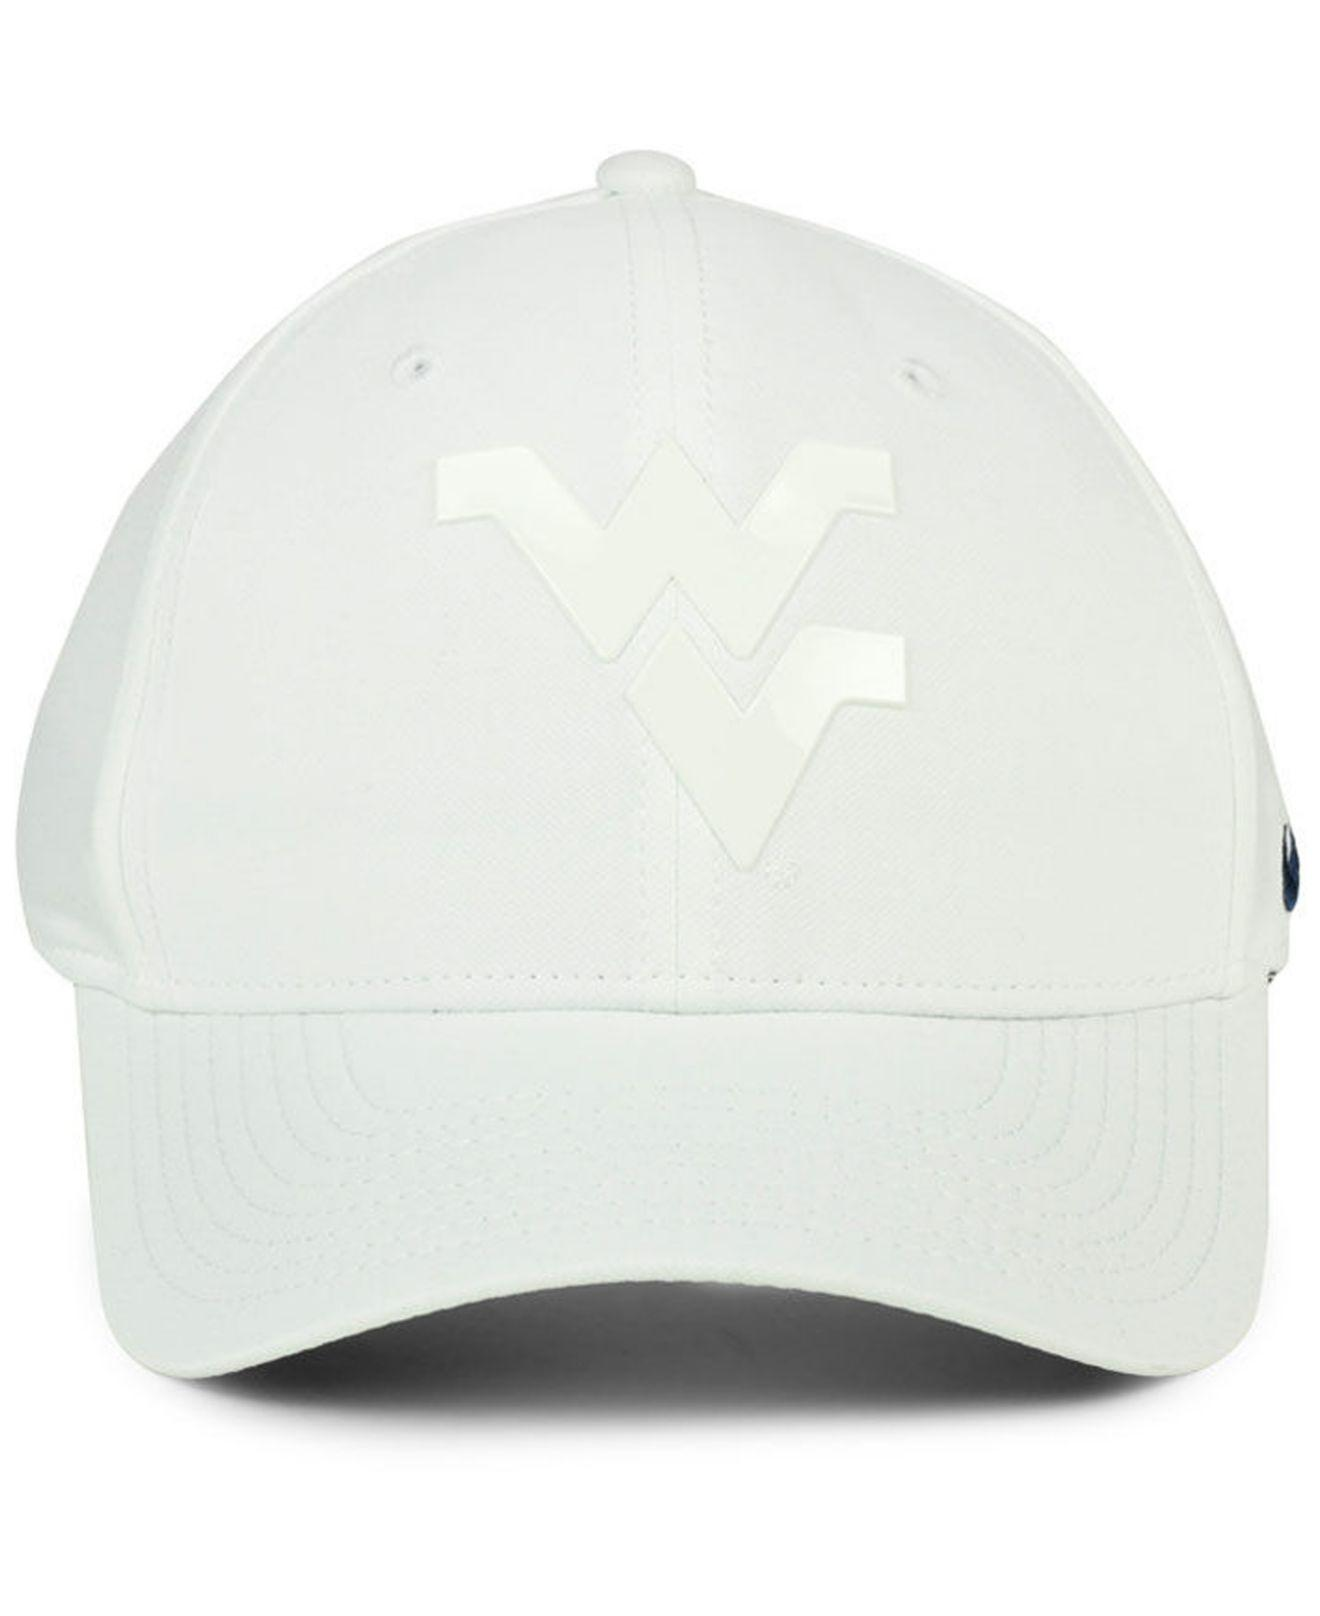 sale retailer db827 5f240 ... cheapest lyst nike west virginia mountaineers col cap in white for men  4fb79 b2c55